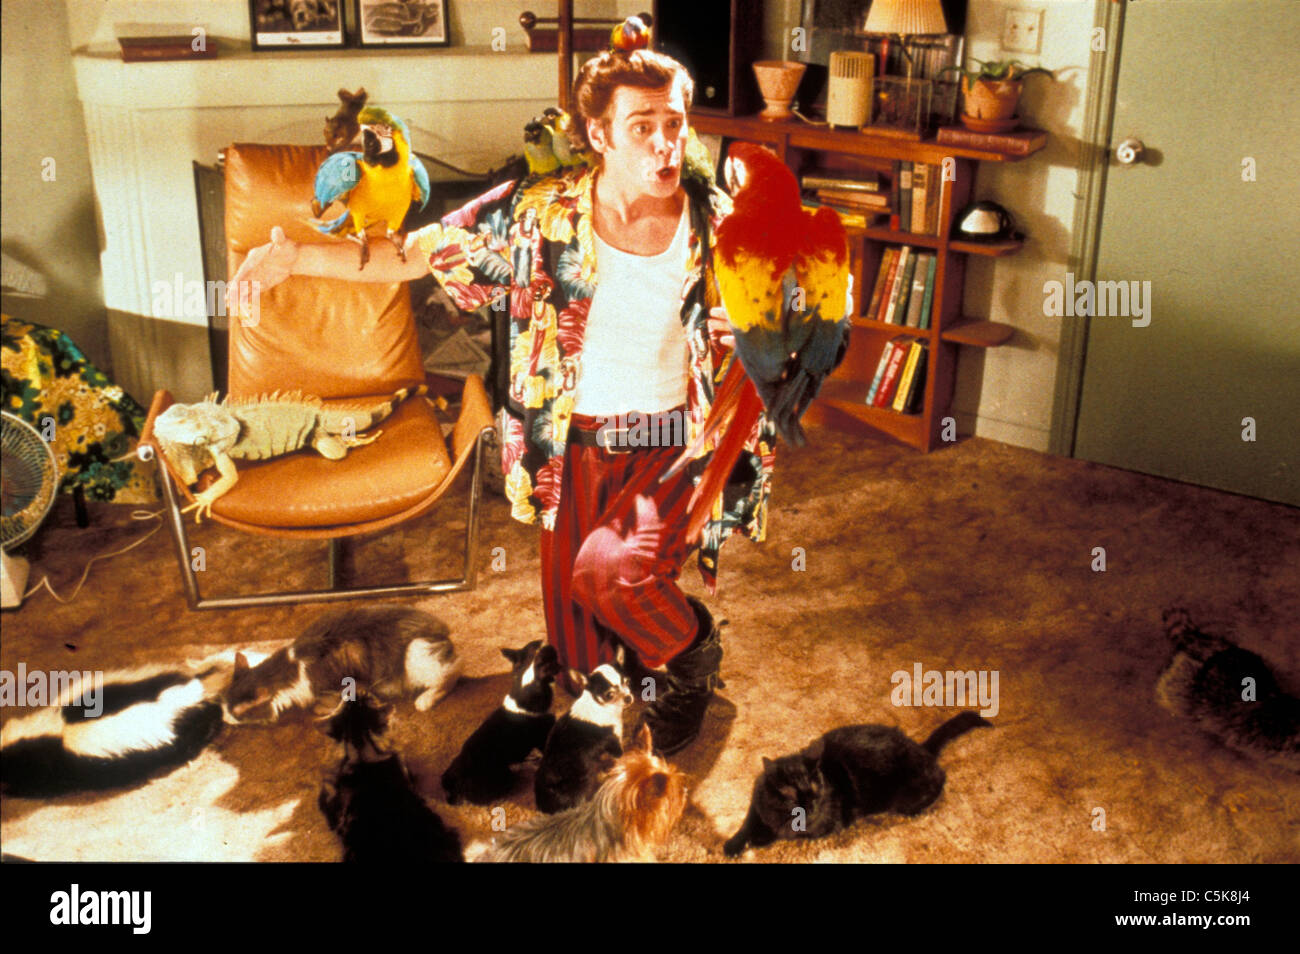 Ace Ventura: Pet Detective Year: 1994 USA Jim Carrey